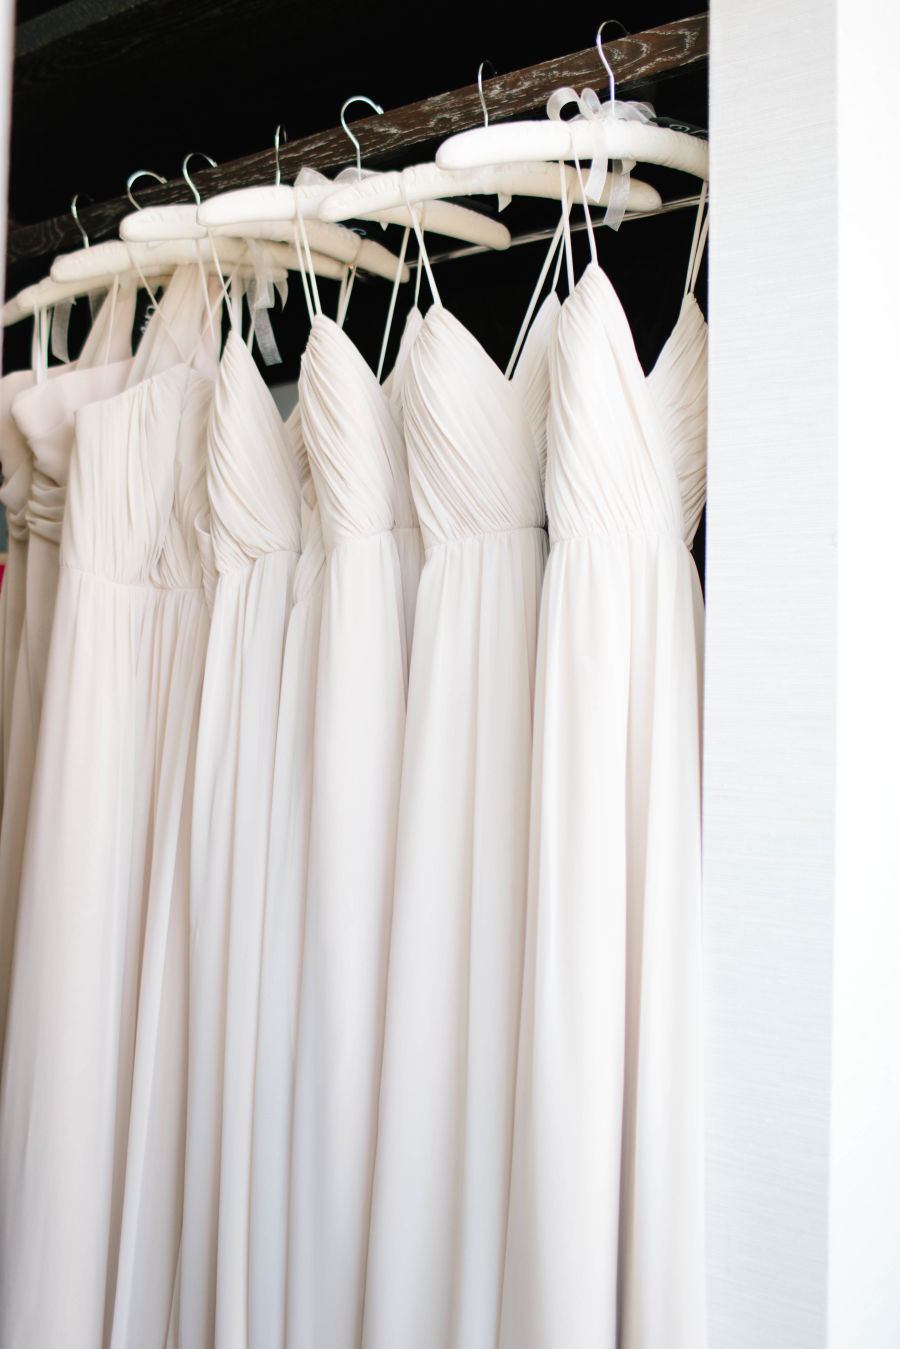 Can My Bridal Party Wear White?